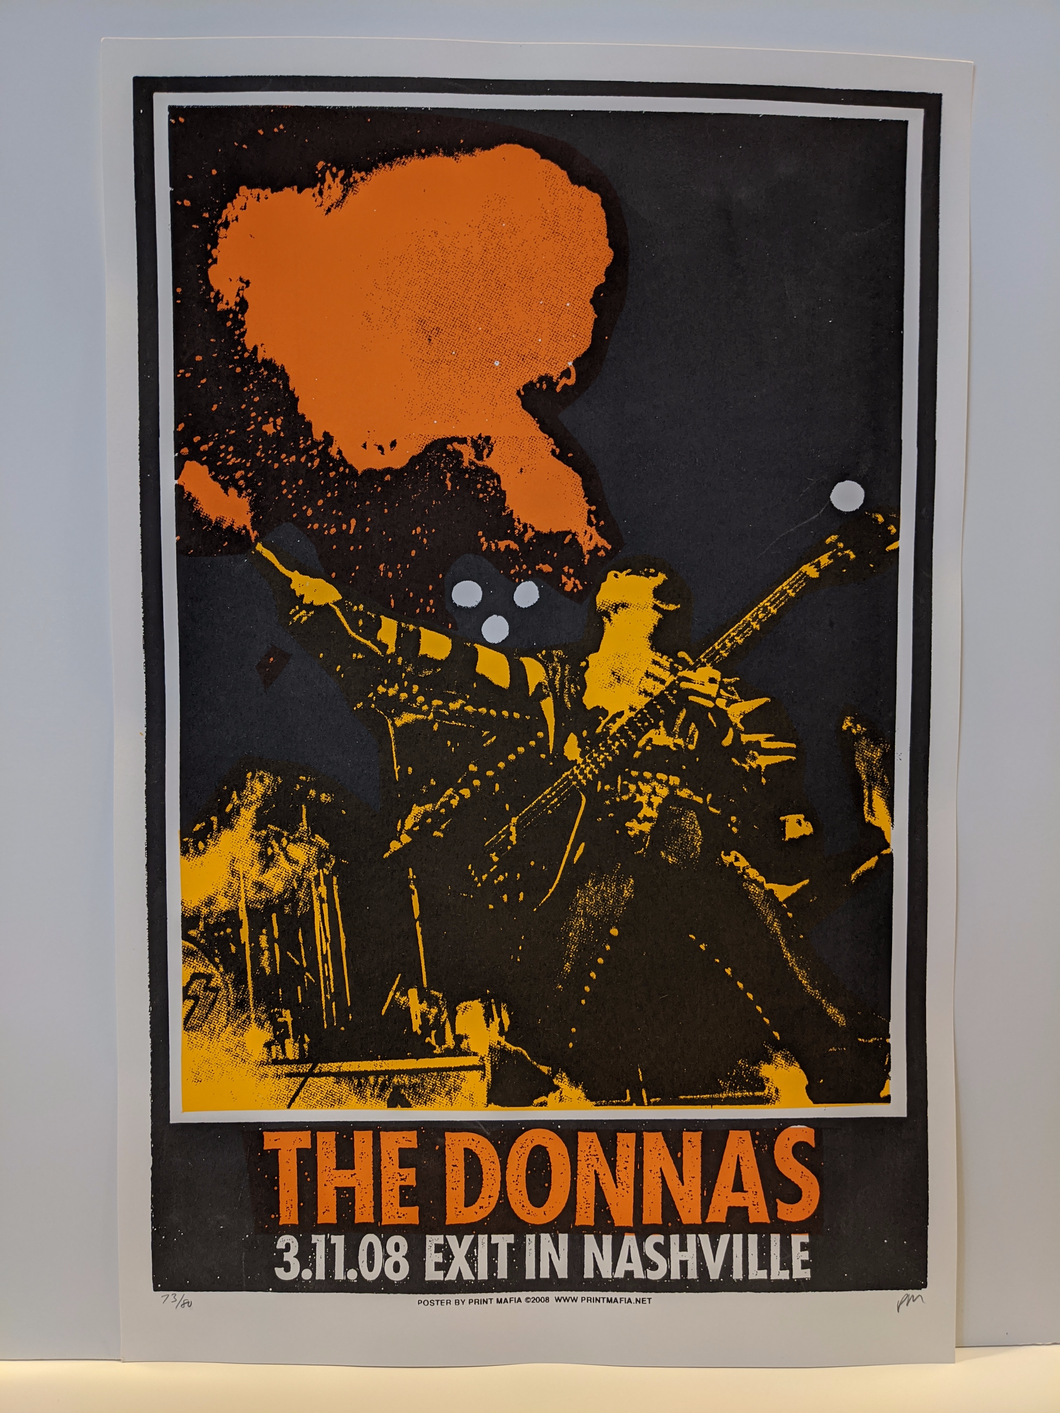 The Donnas - Poster